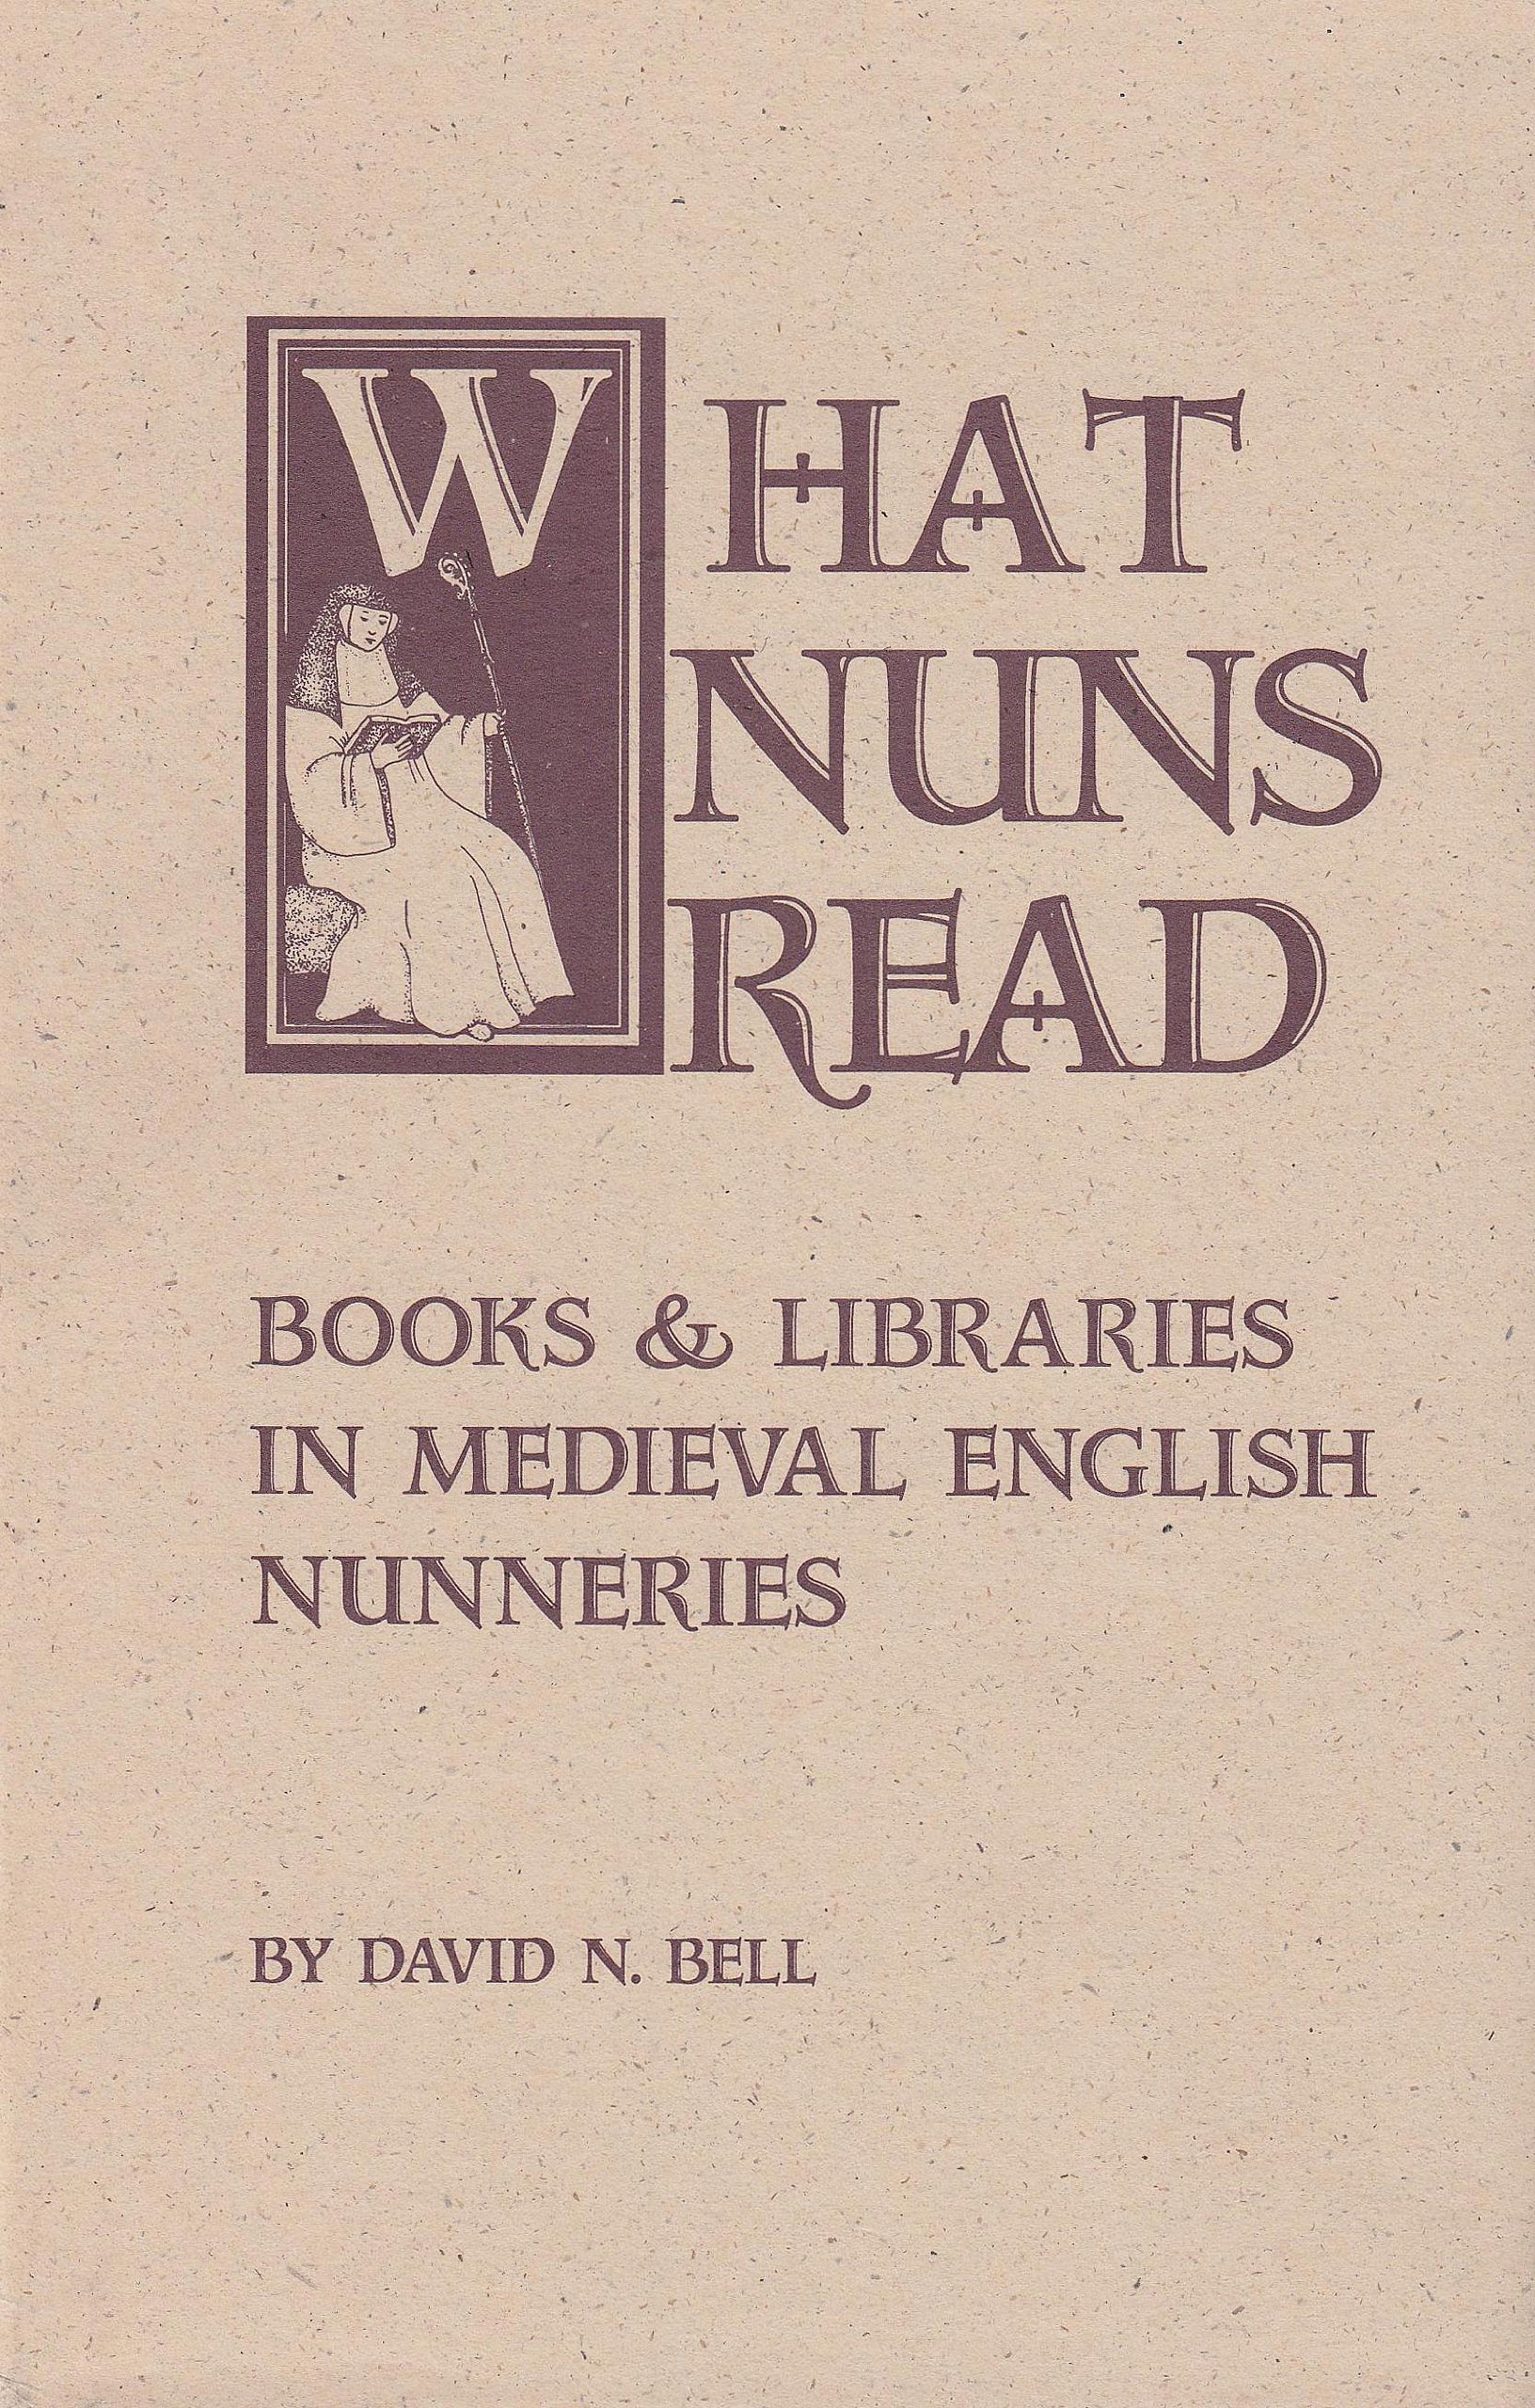 What Nuns Read: Books and Libraries in Medieval English Nunneries (Cistercian Studies) by Cistercian Publications